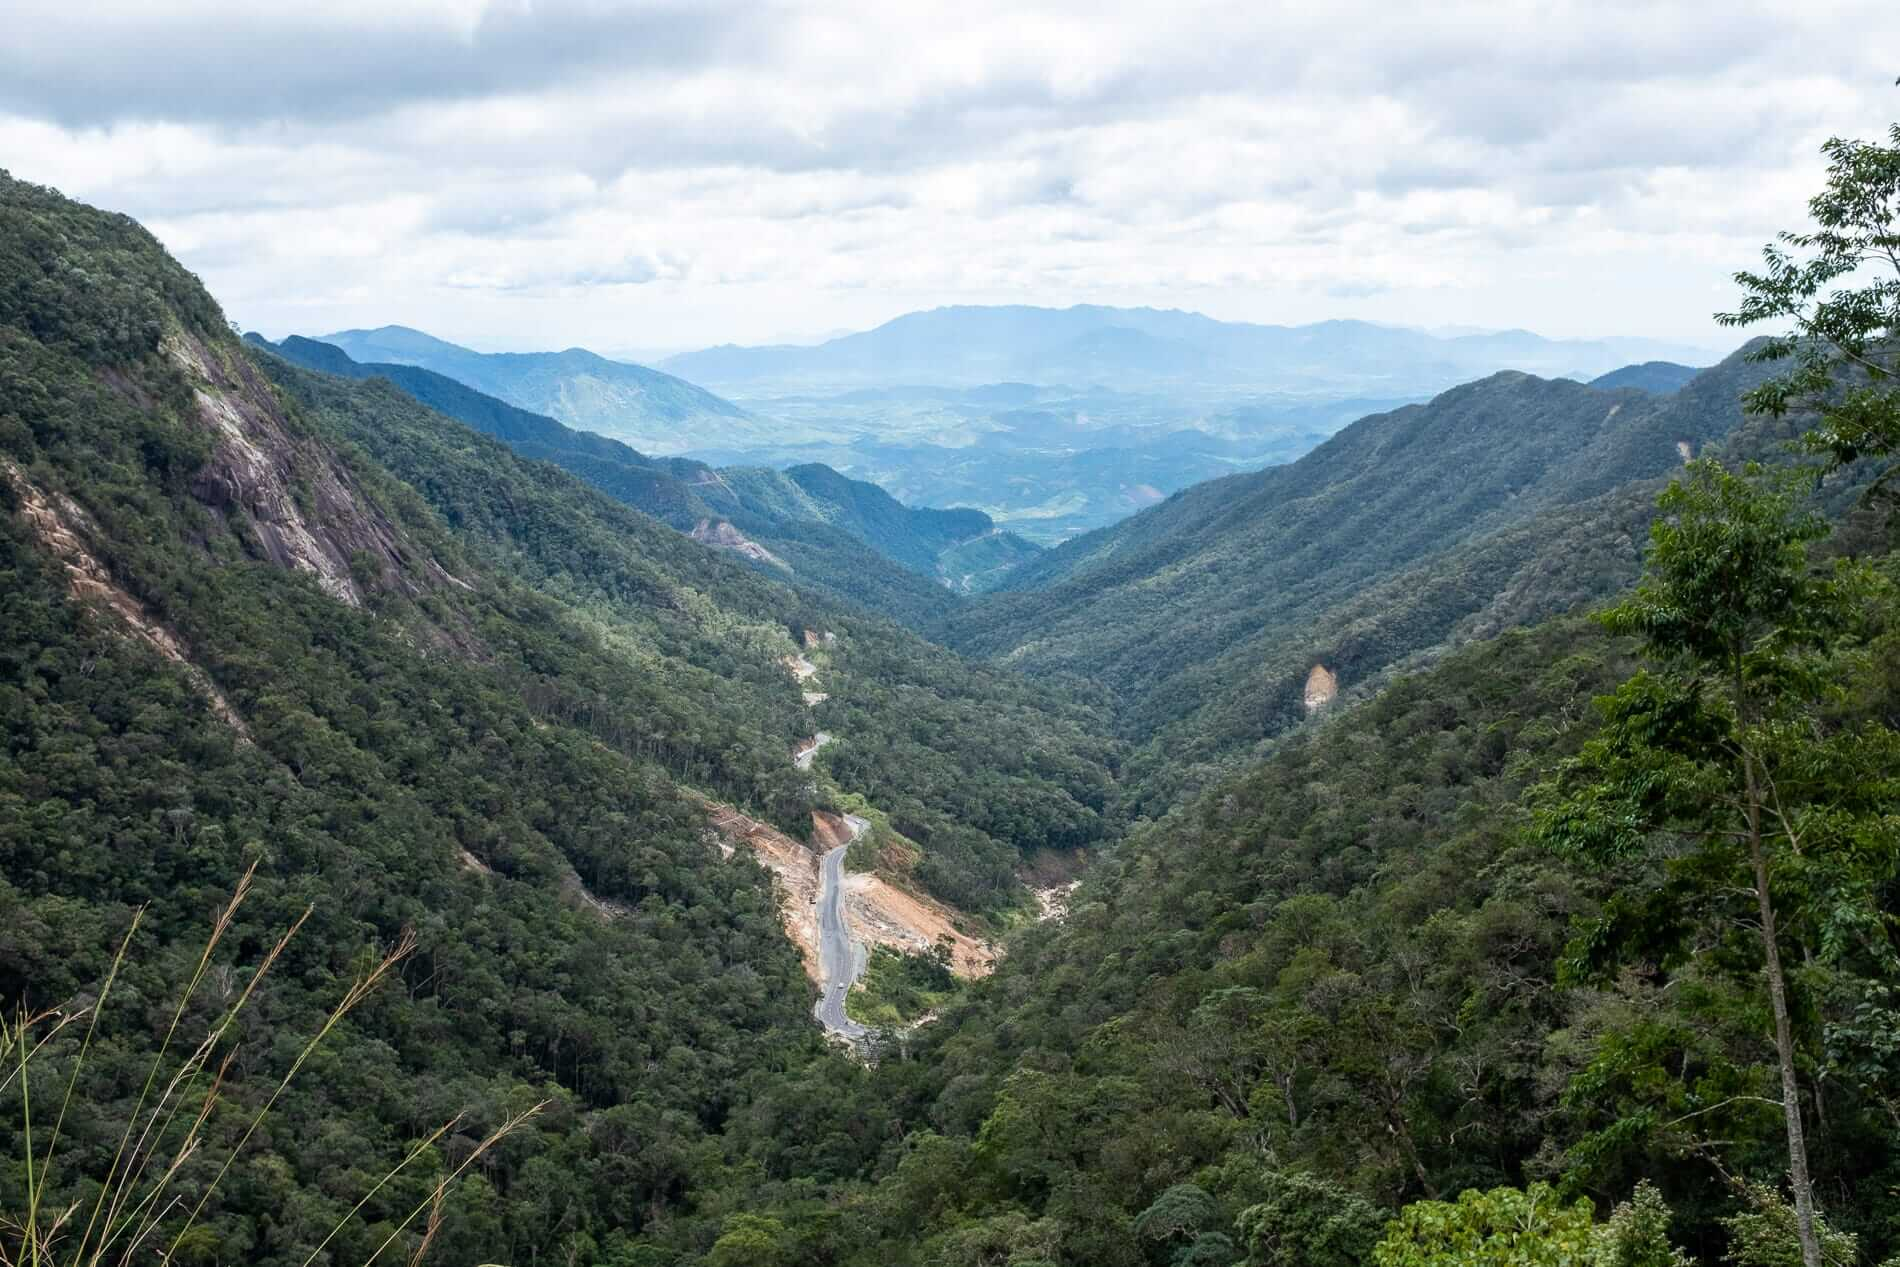 A road winds up the mountains into Da Lat City